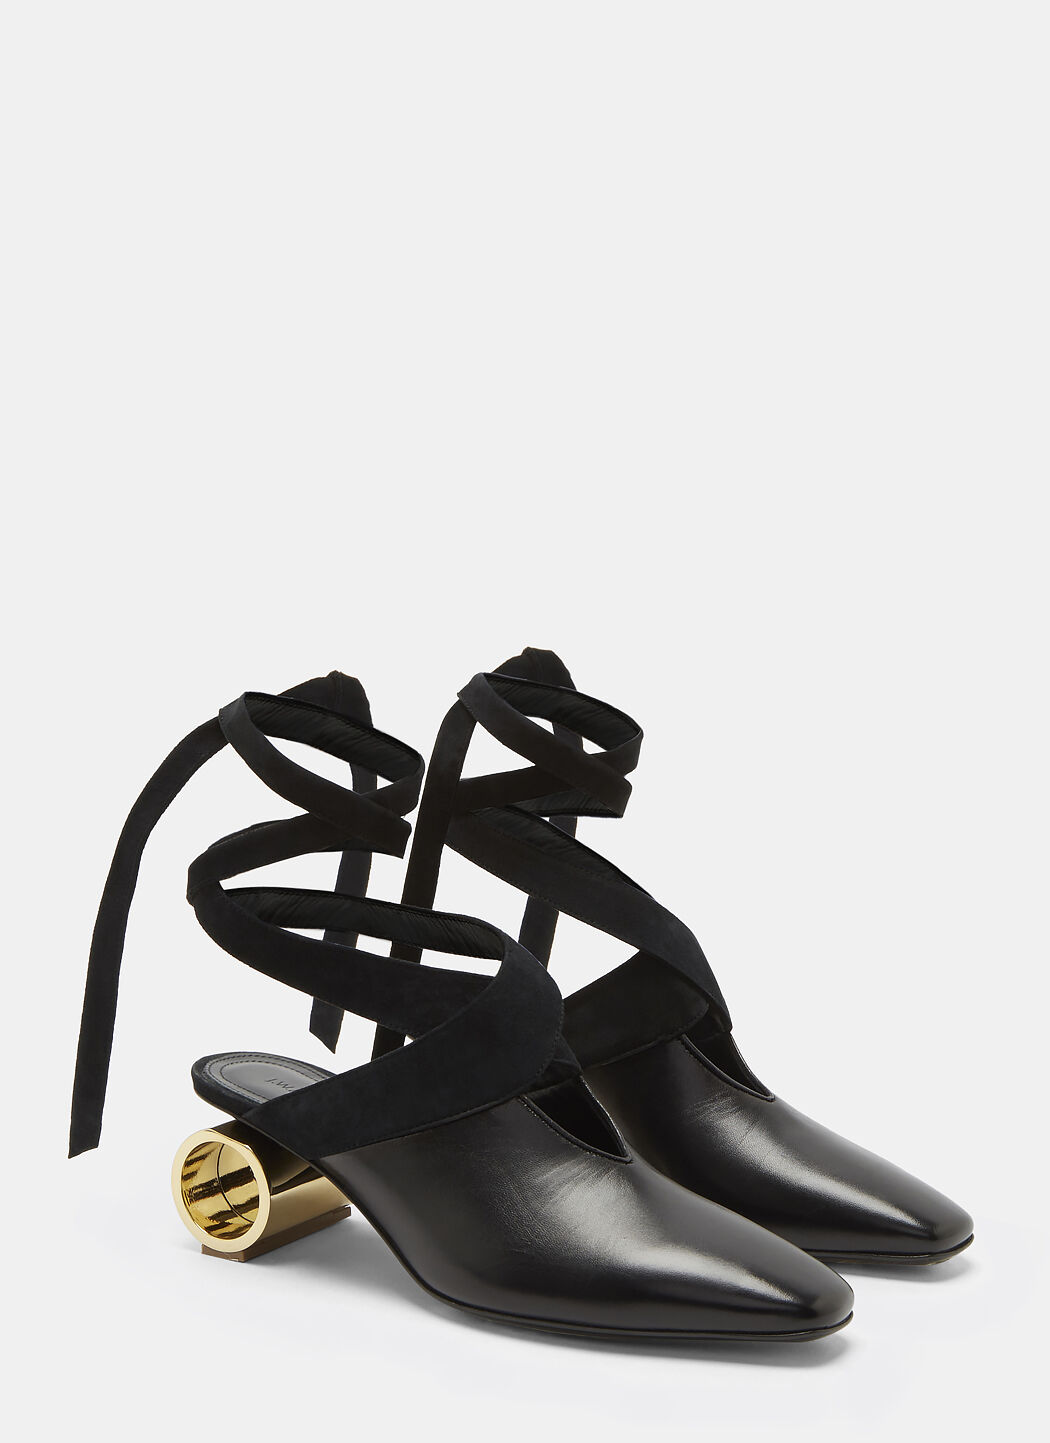 J.W.Anderson Cylinder Heeled Leather Ballerina Shoes uODwIA